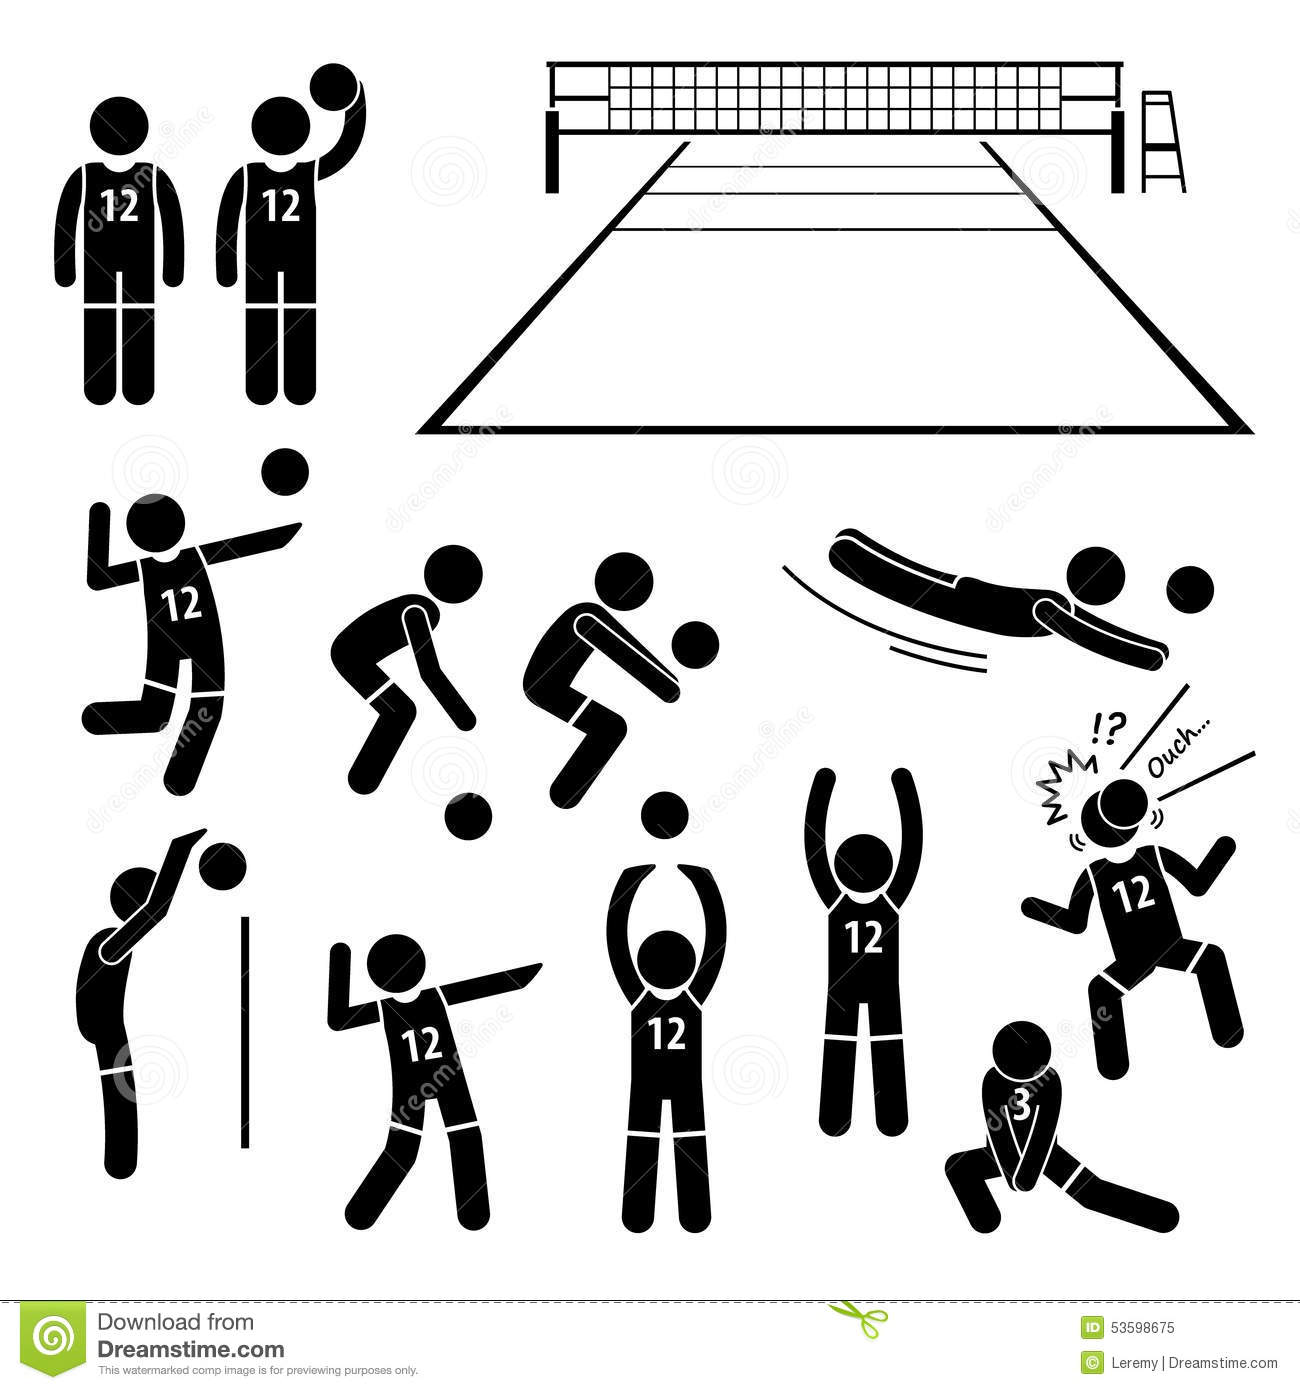 Volleyball Player Actions Poses Postures Cliparts Stock